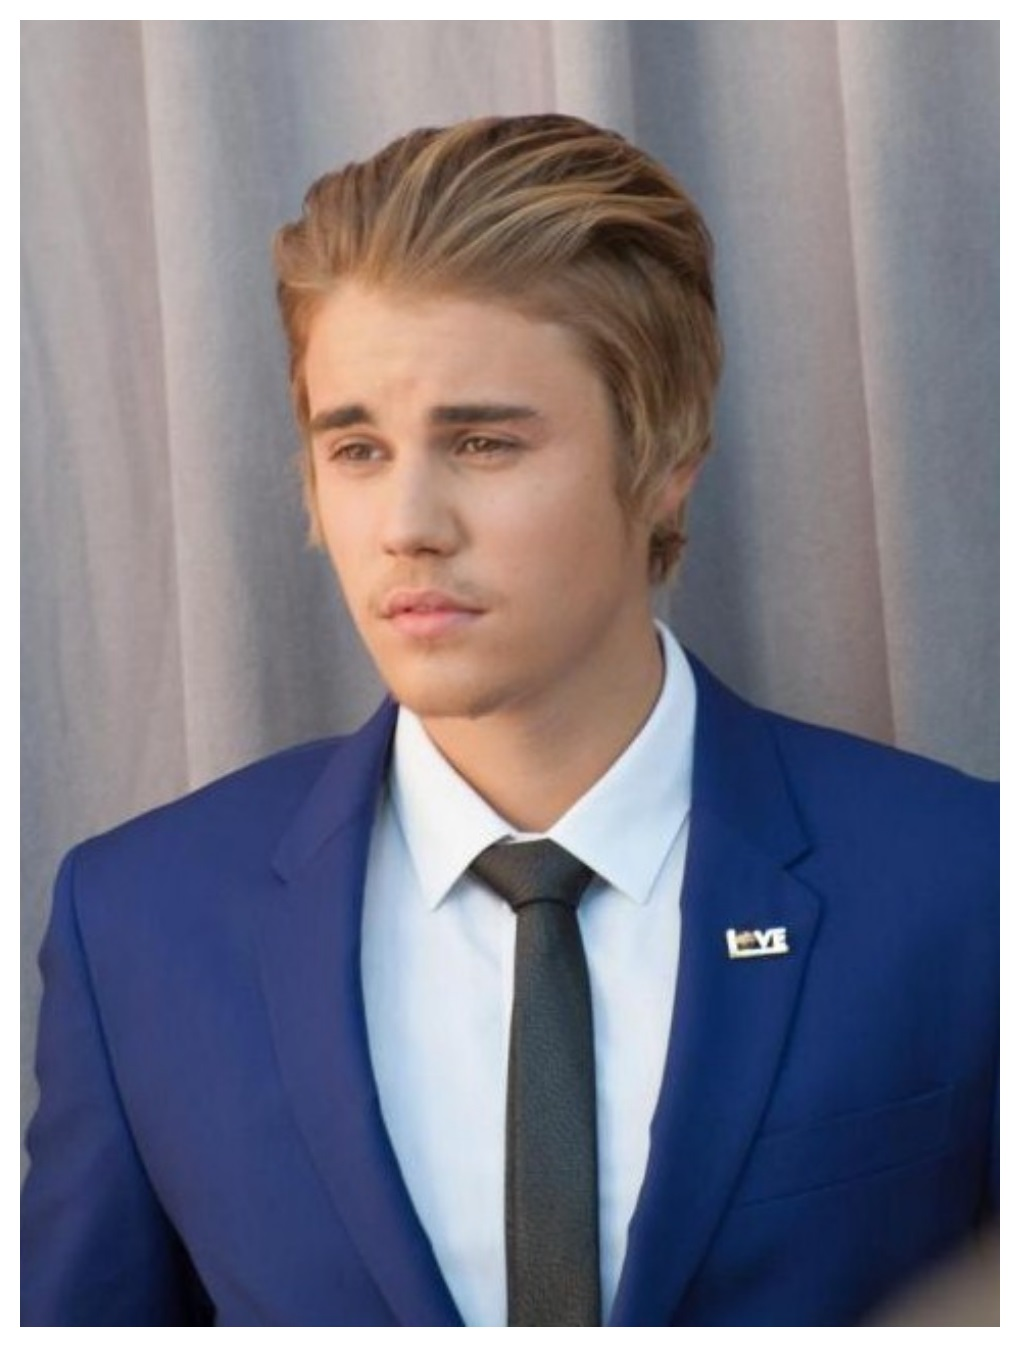 Attractive Justin Bieber Hairstyle free